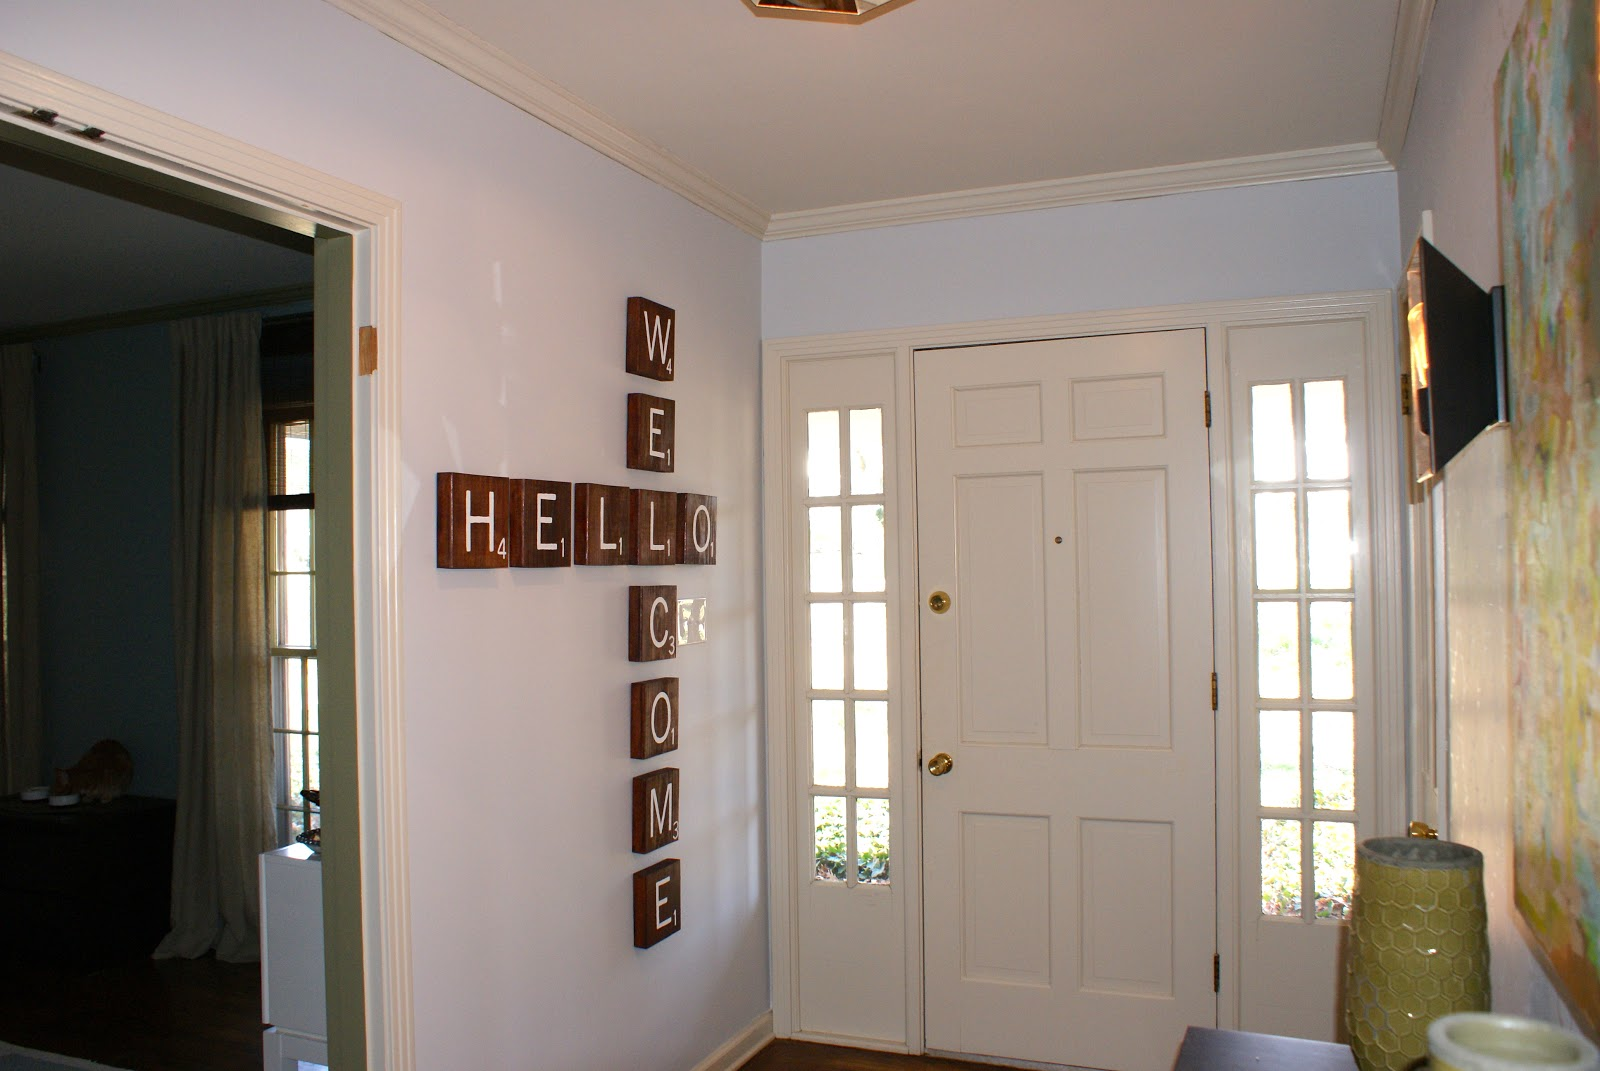 some like a project scrabble tile wall art. Black Bedroom Furniture Sets. Home Design Ideas